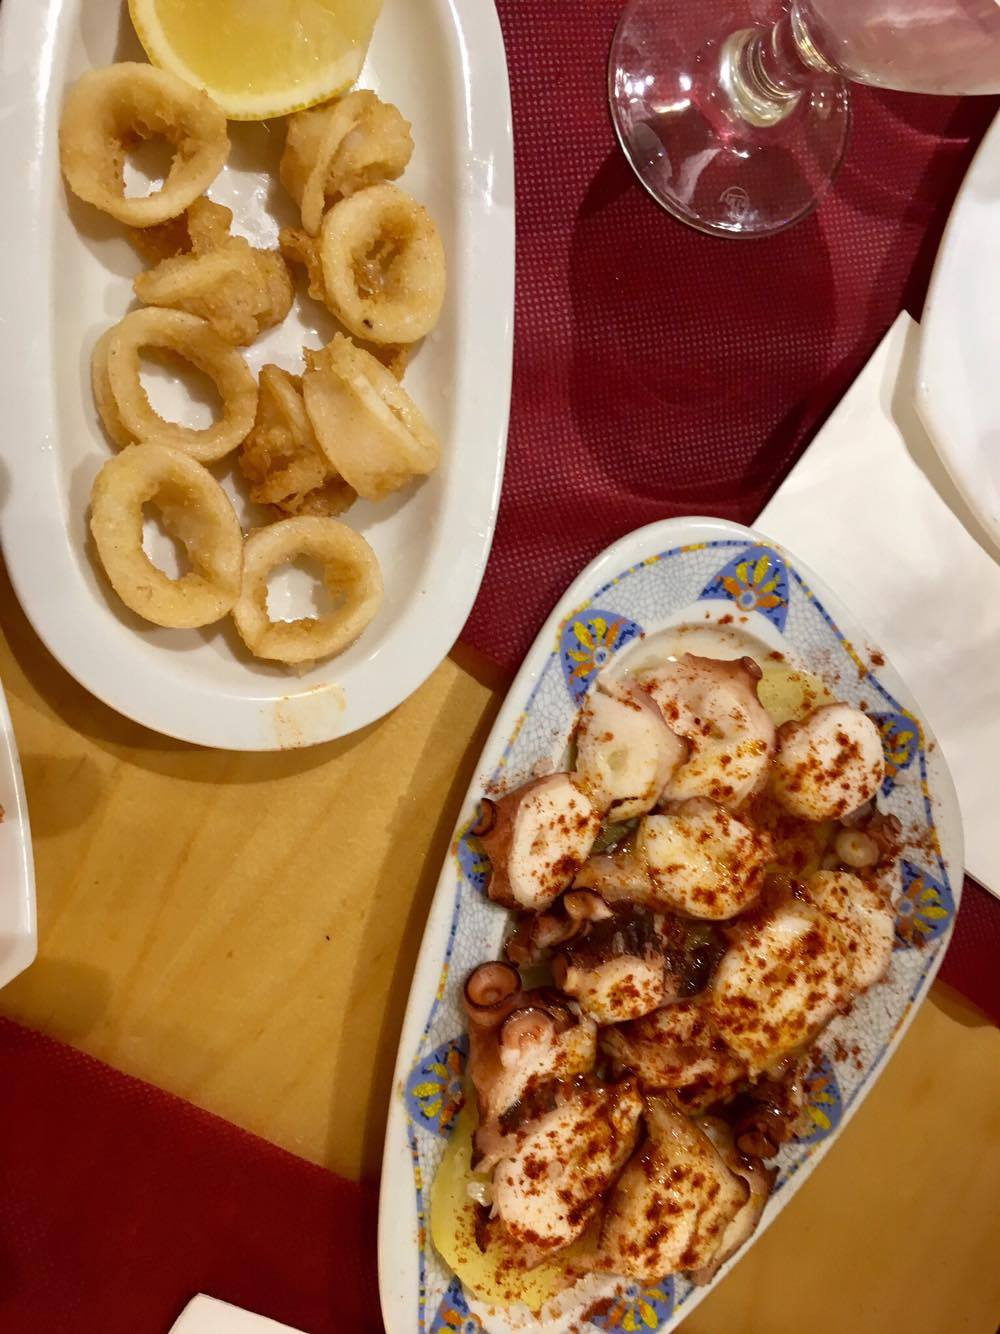 Fried calamari and braised octopus